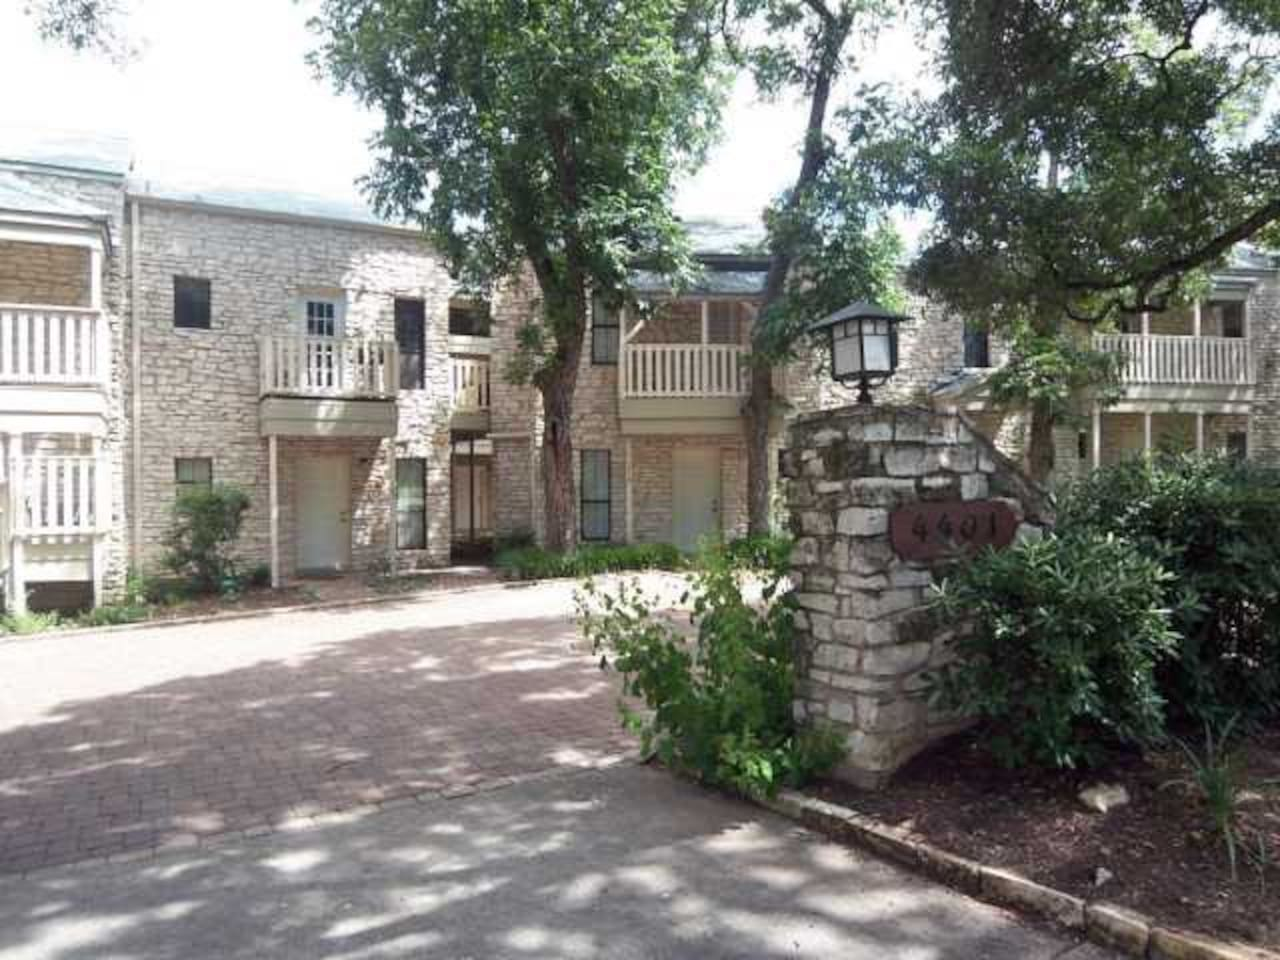 This is the front of the complex. It's comfortable and quiet with an Old World charm!